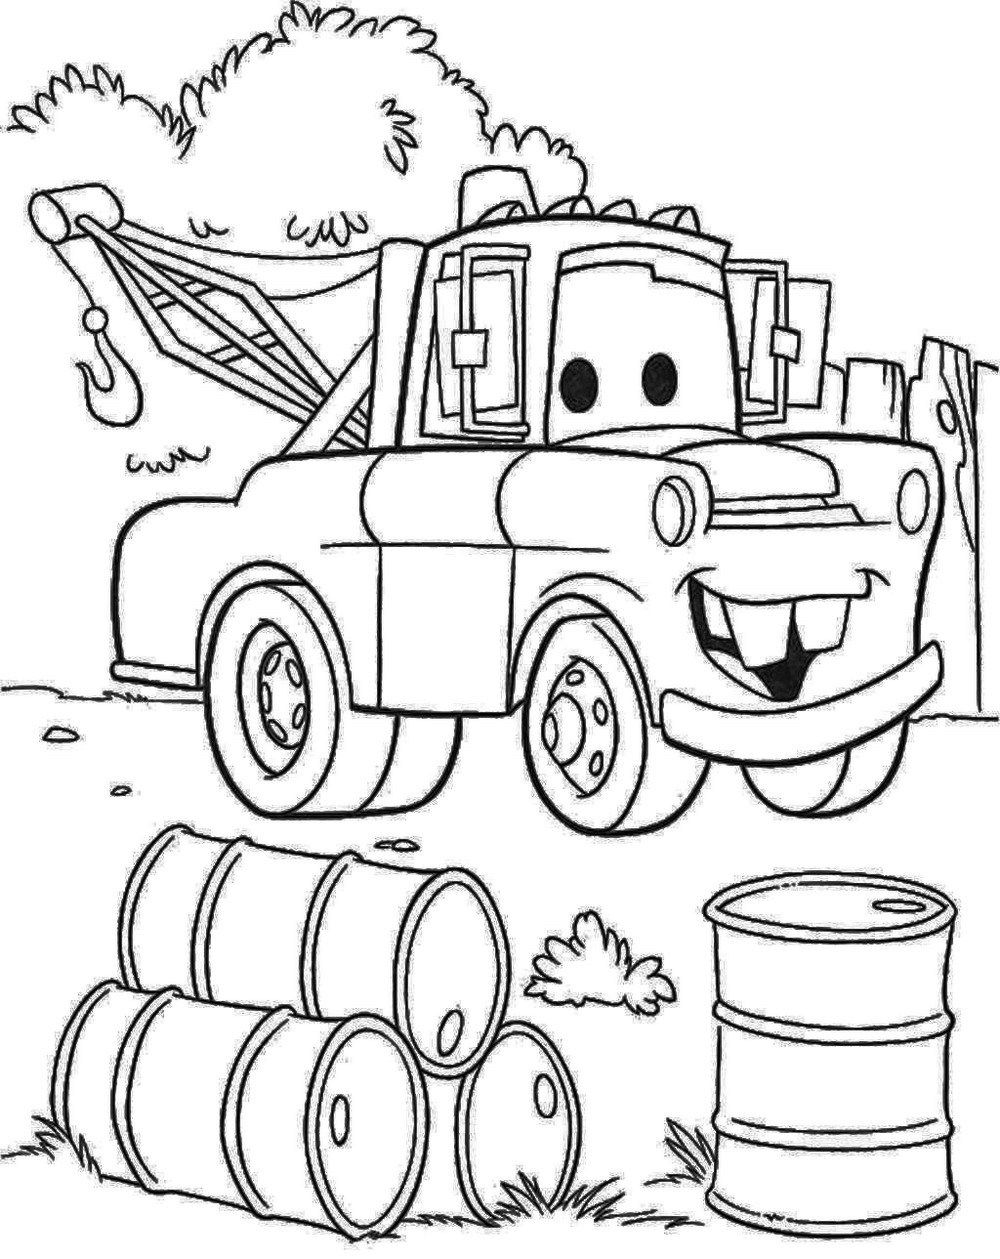 Mater Colouring Pages To Print Cars coloring pages